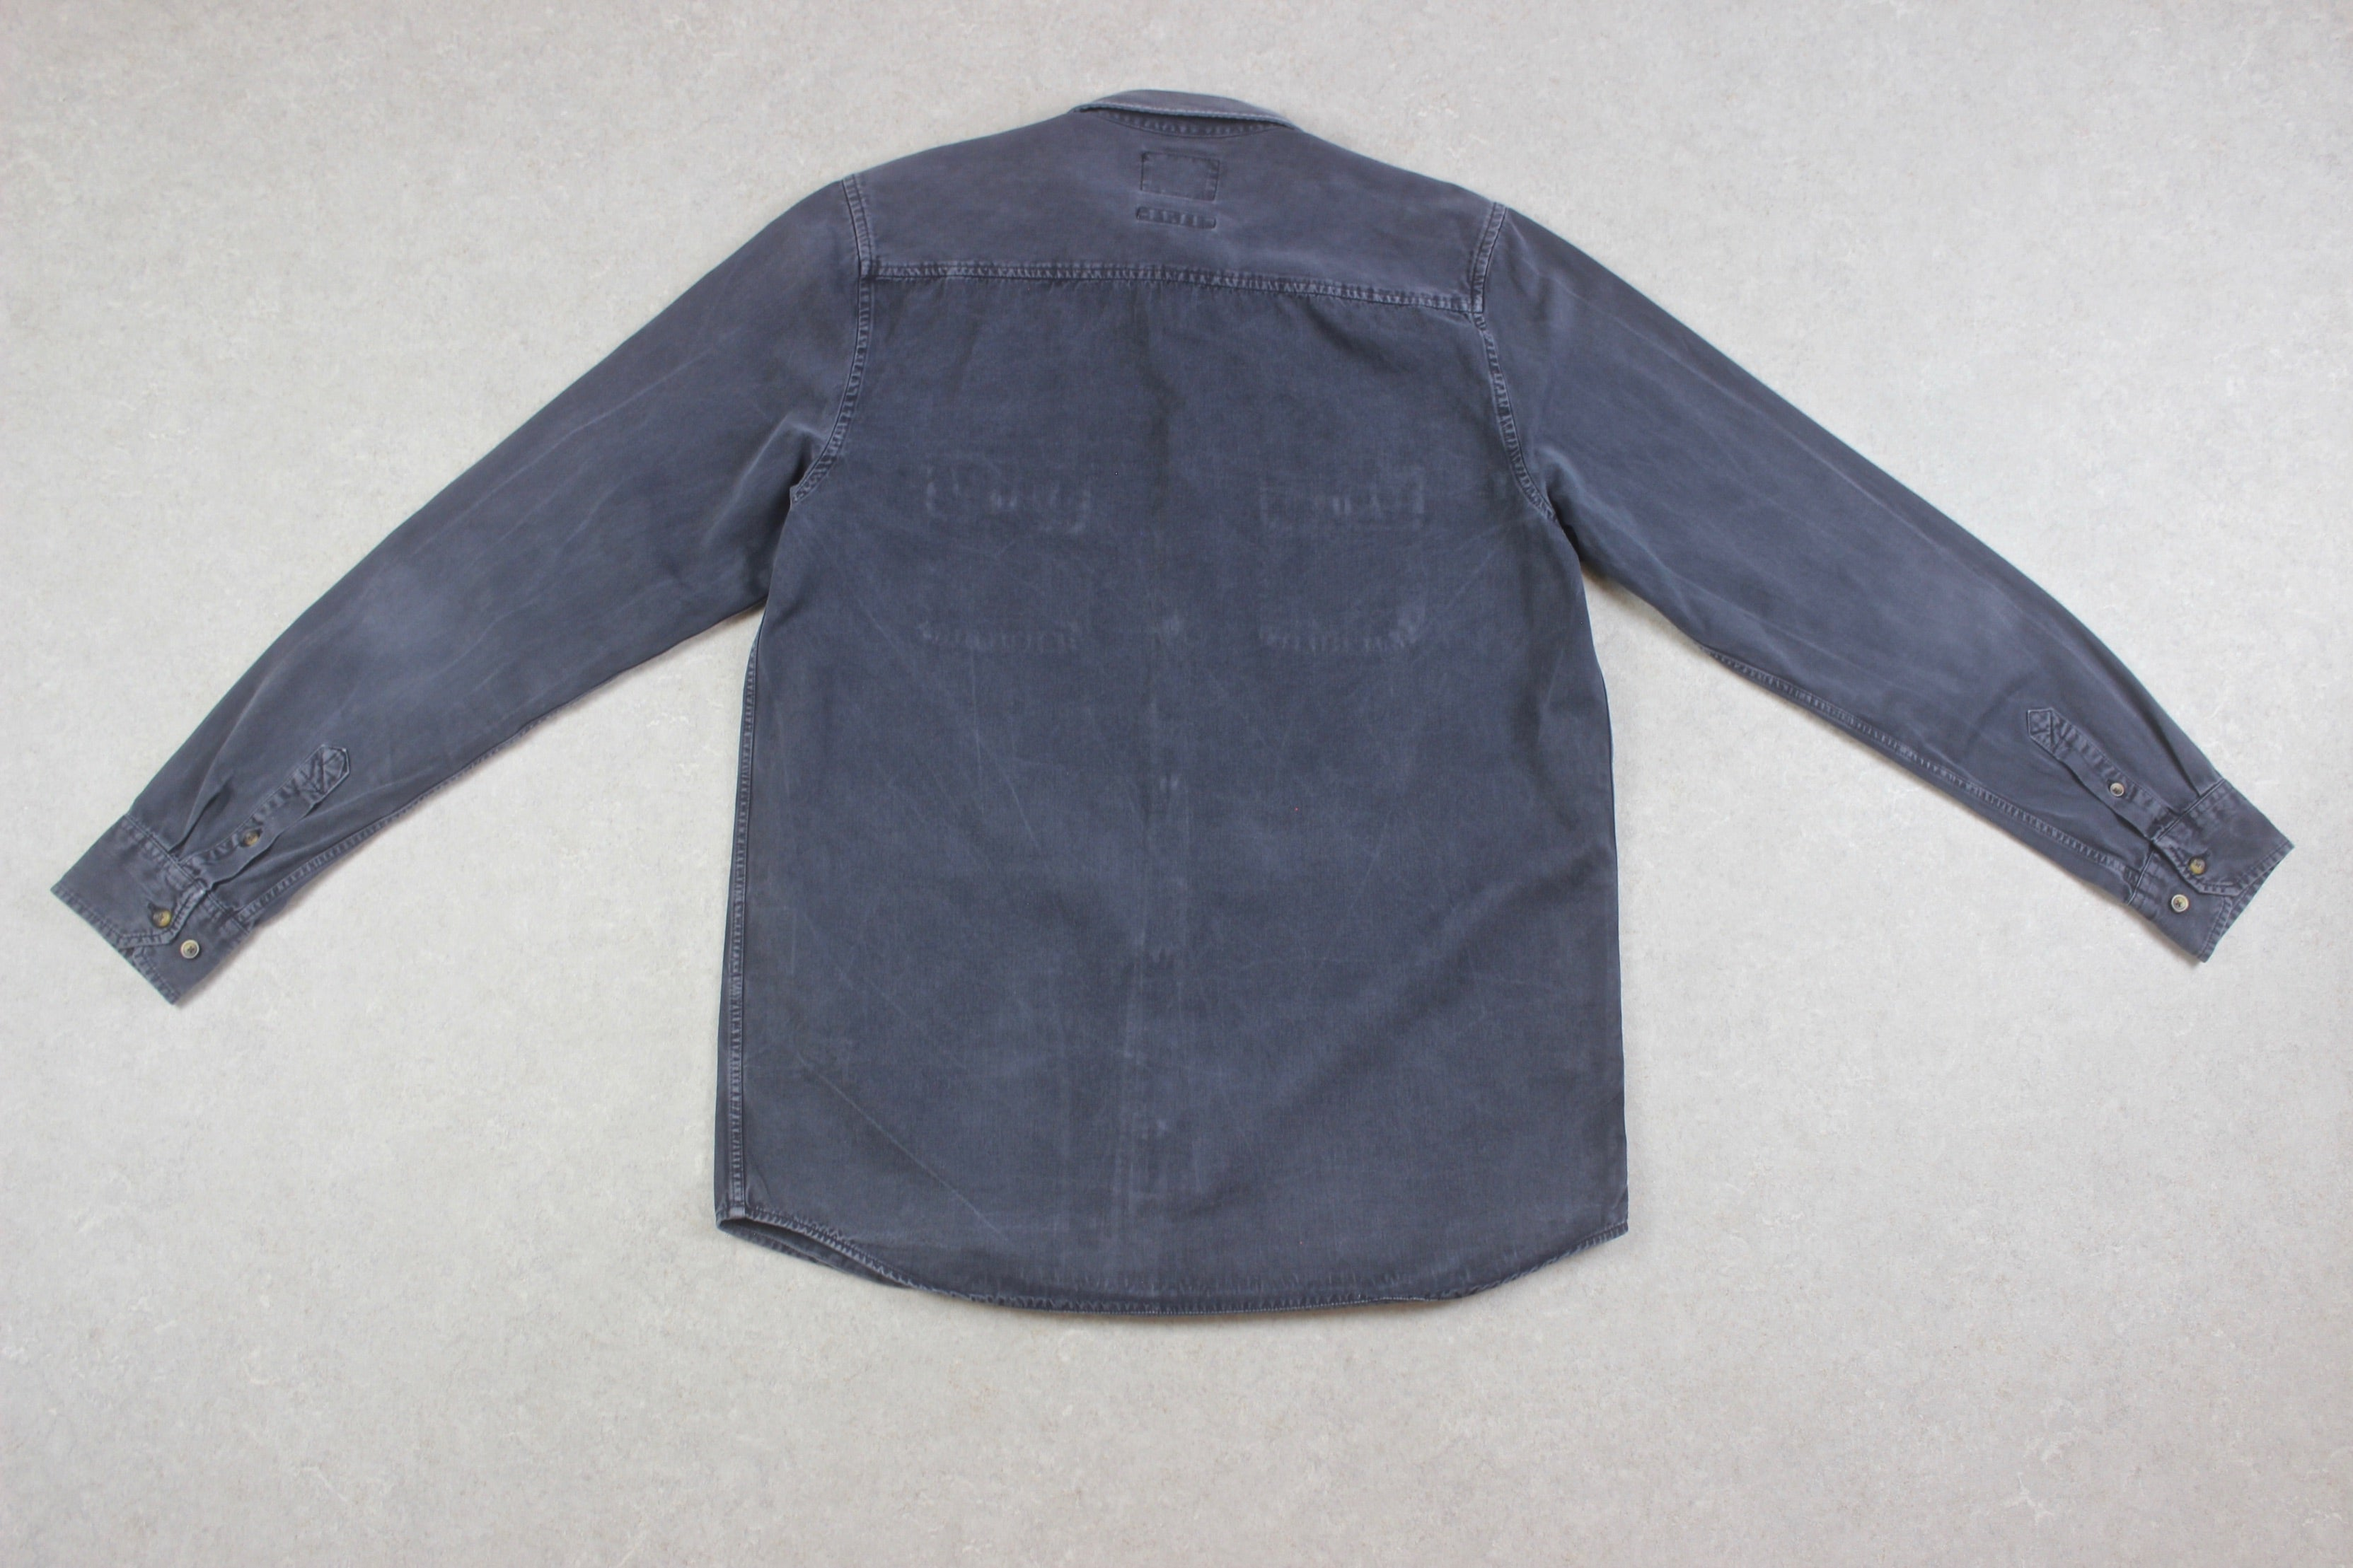 Norse Projects - Shirt - Grey - Medium